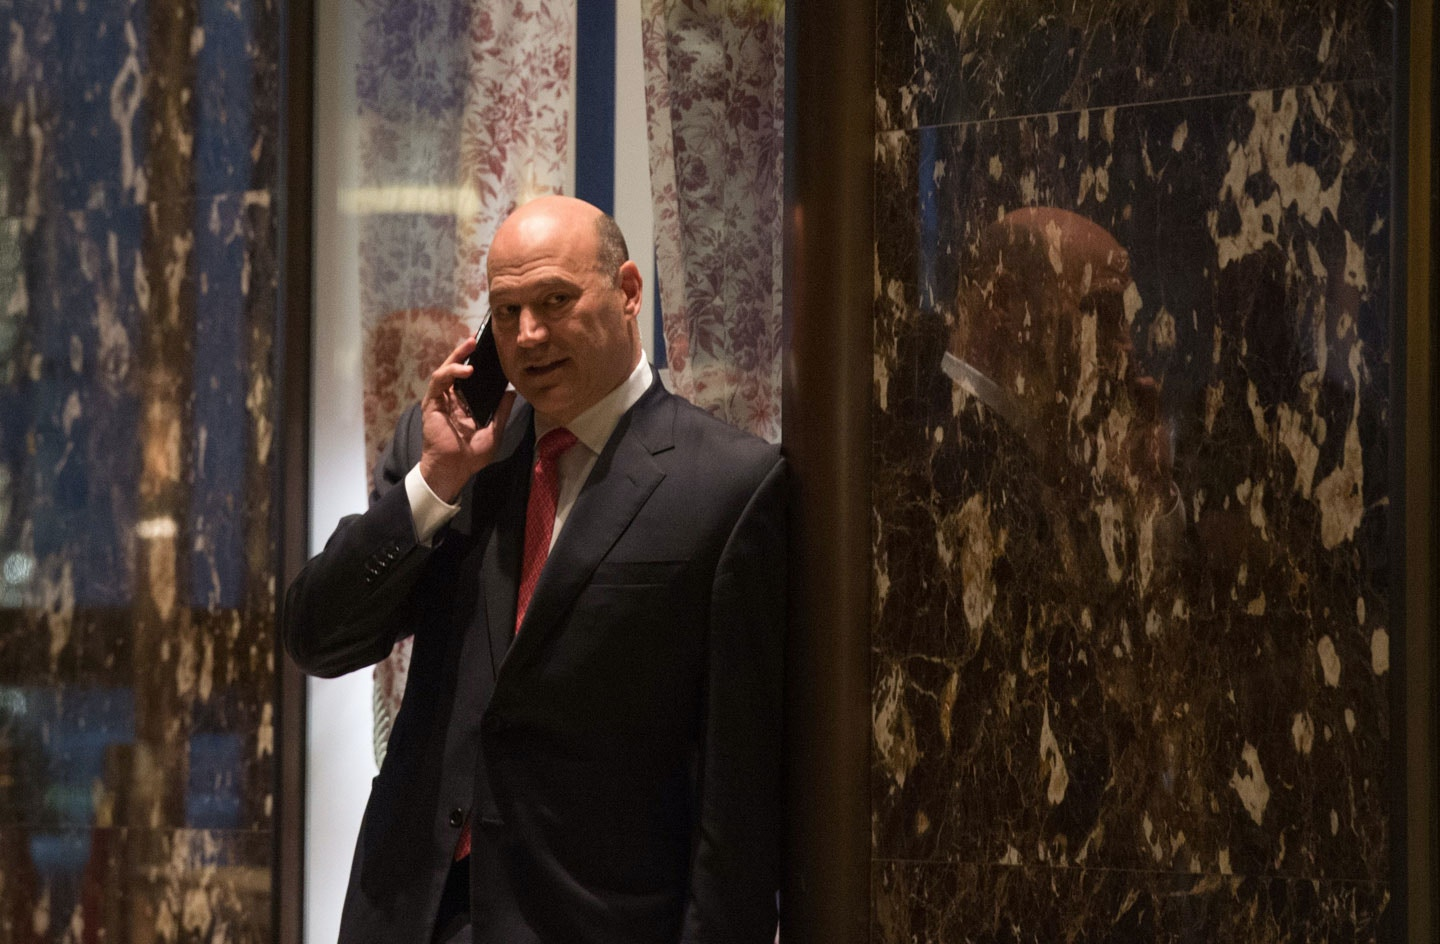 Goldman Sachs president and COO Gary Cohn arrives for a meeting with President-elect Donald Trump at Trump Tower in New York November 29, 2016. / AFP / Bryan R. Smith        (Photo credit should read BRYAN R. SMITH/AFP/Getty Images)